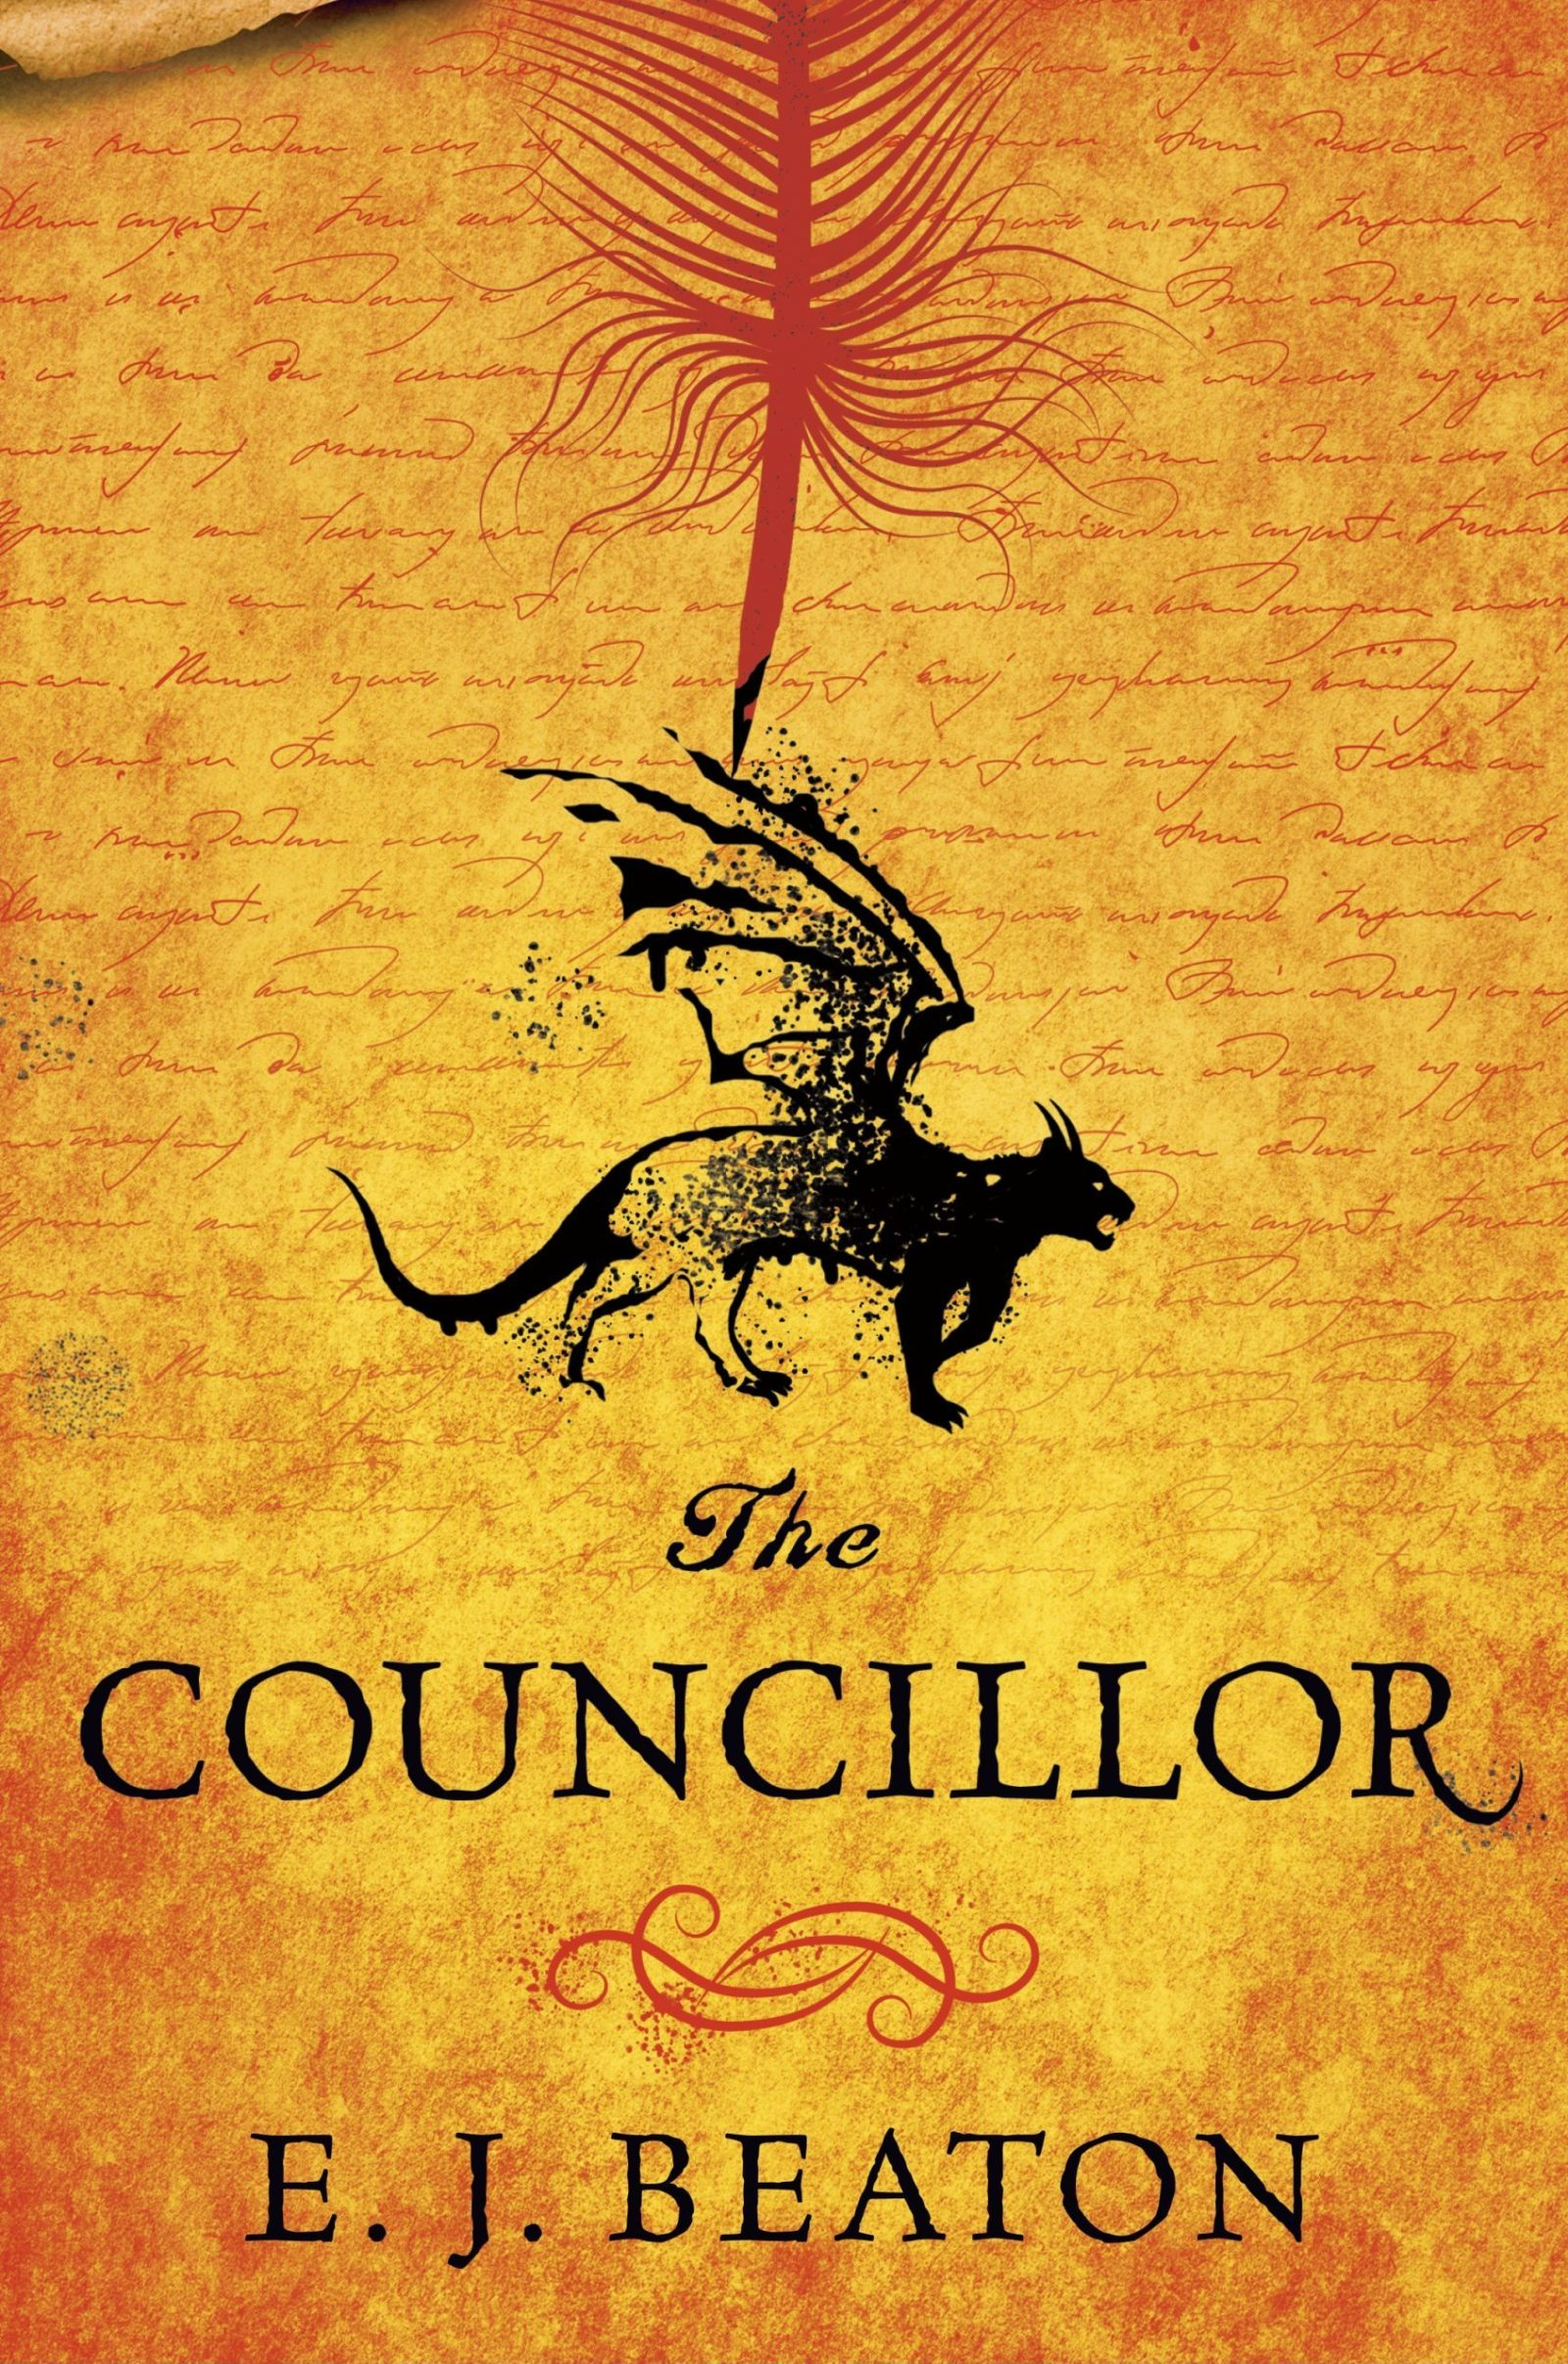 Cover of The Councillor by E.J. Beaton